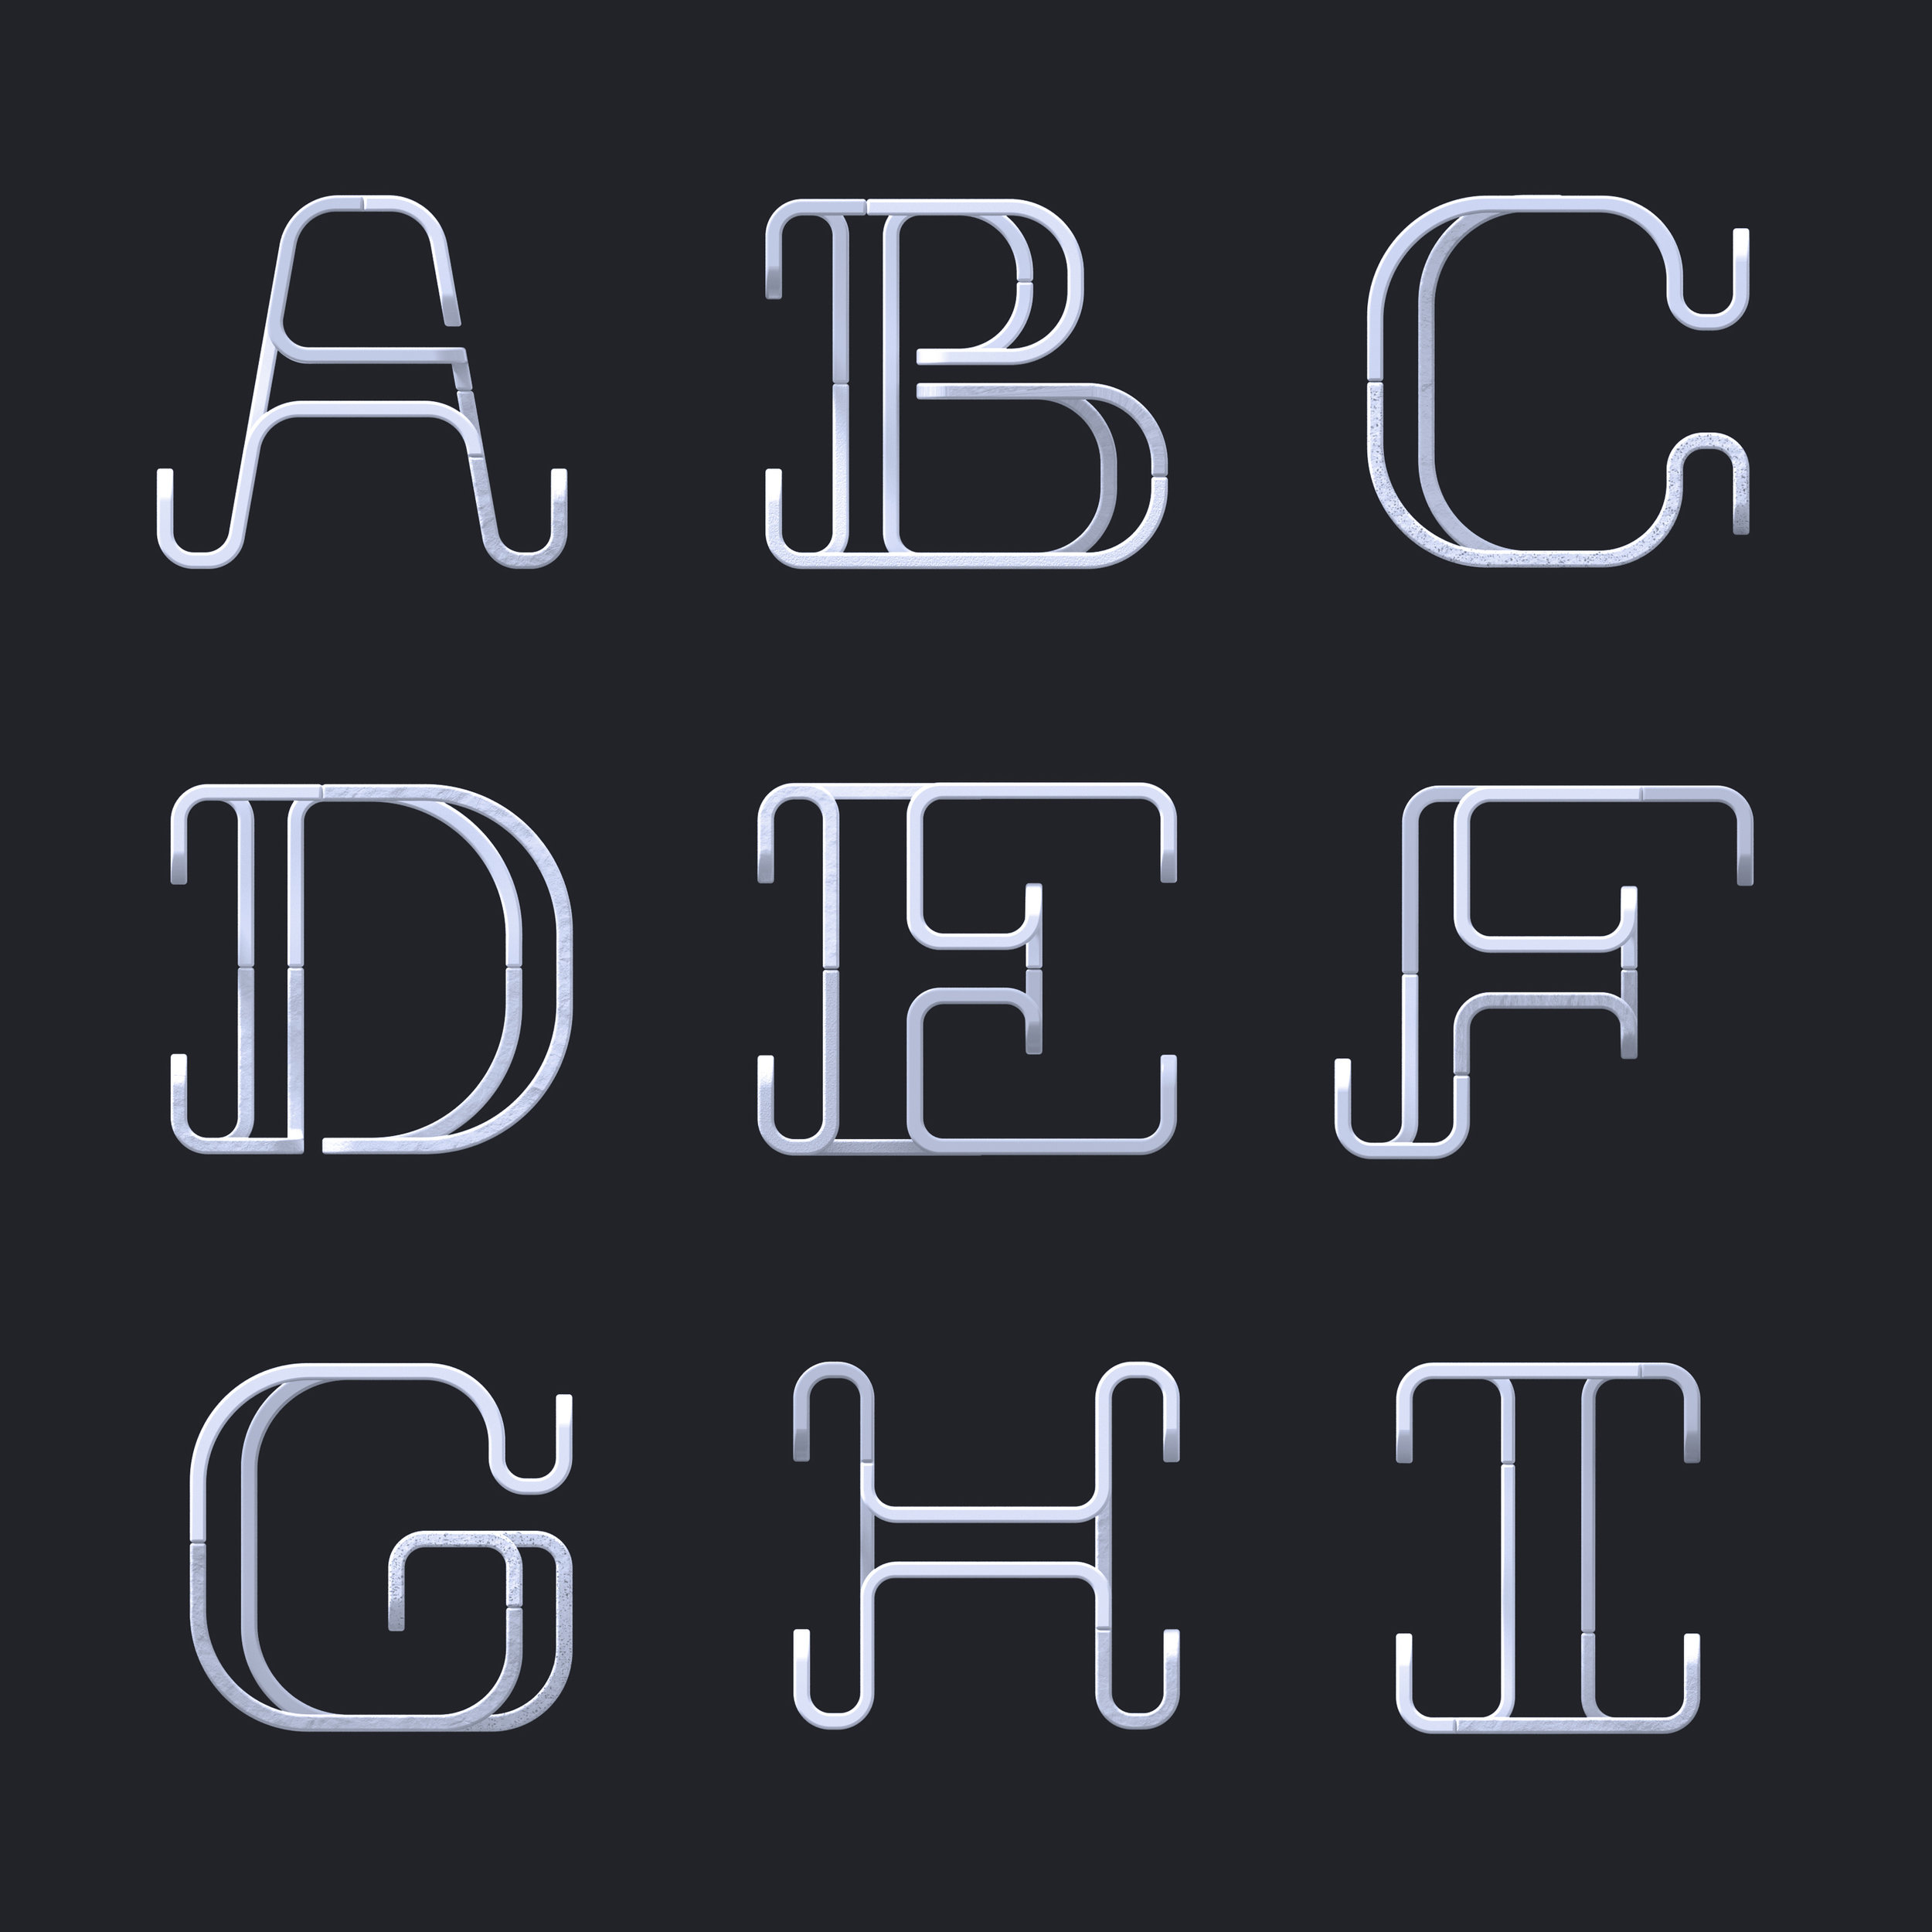 36 Days of Type 2019 - 2D Typeform letter A to I.